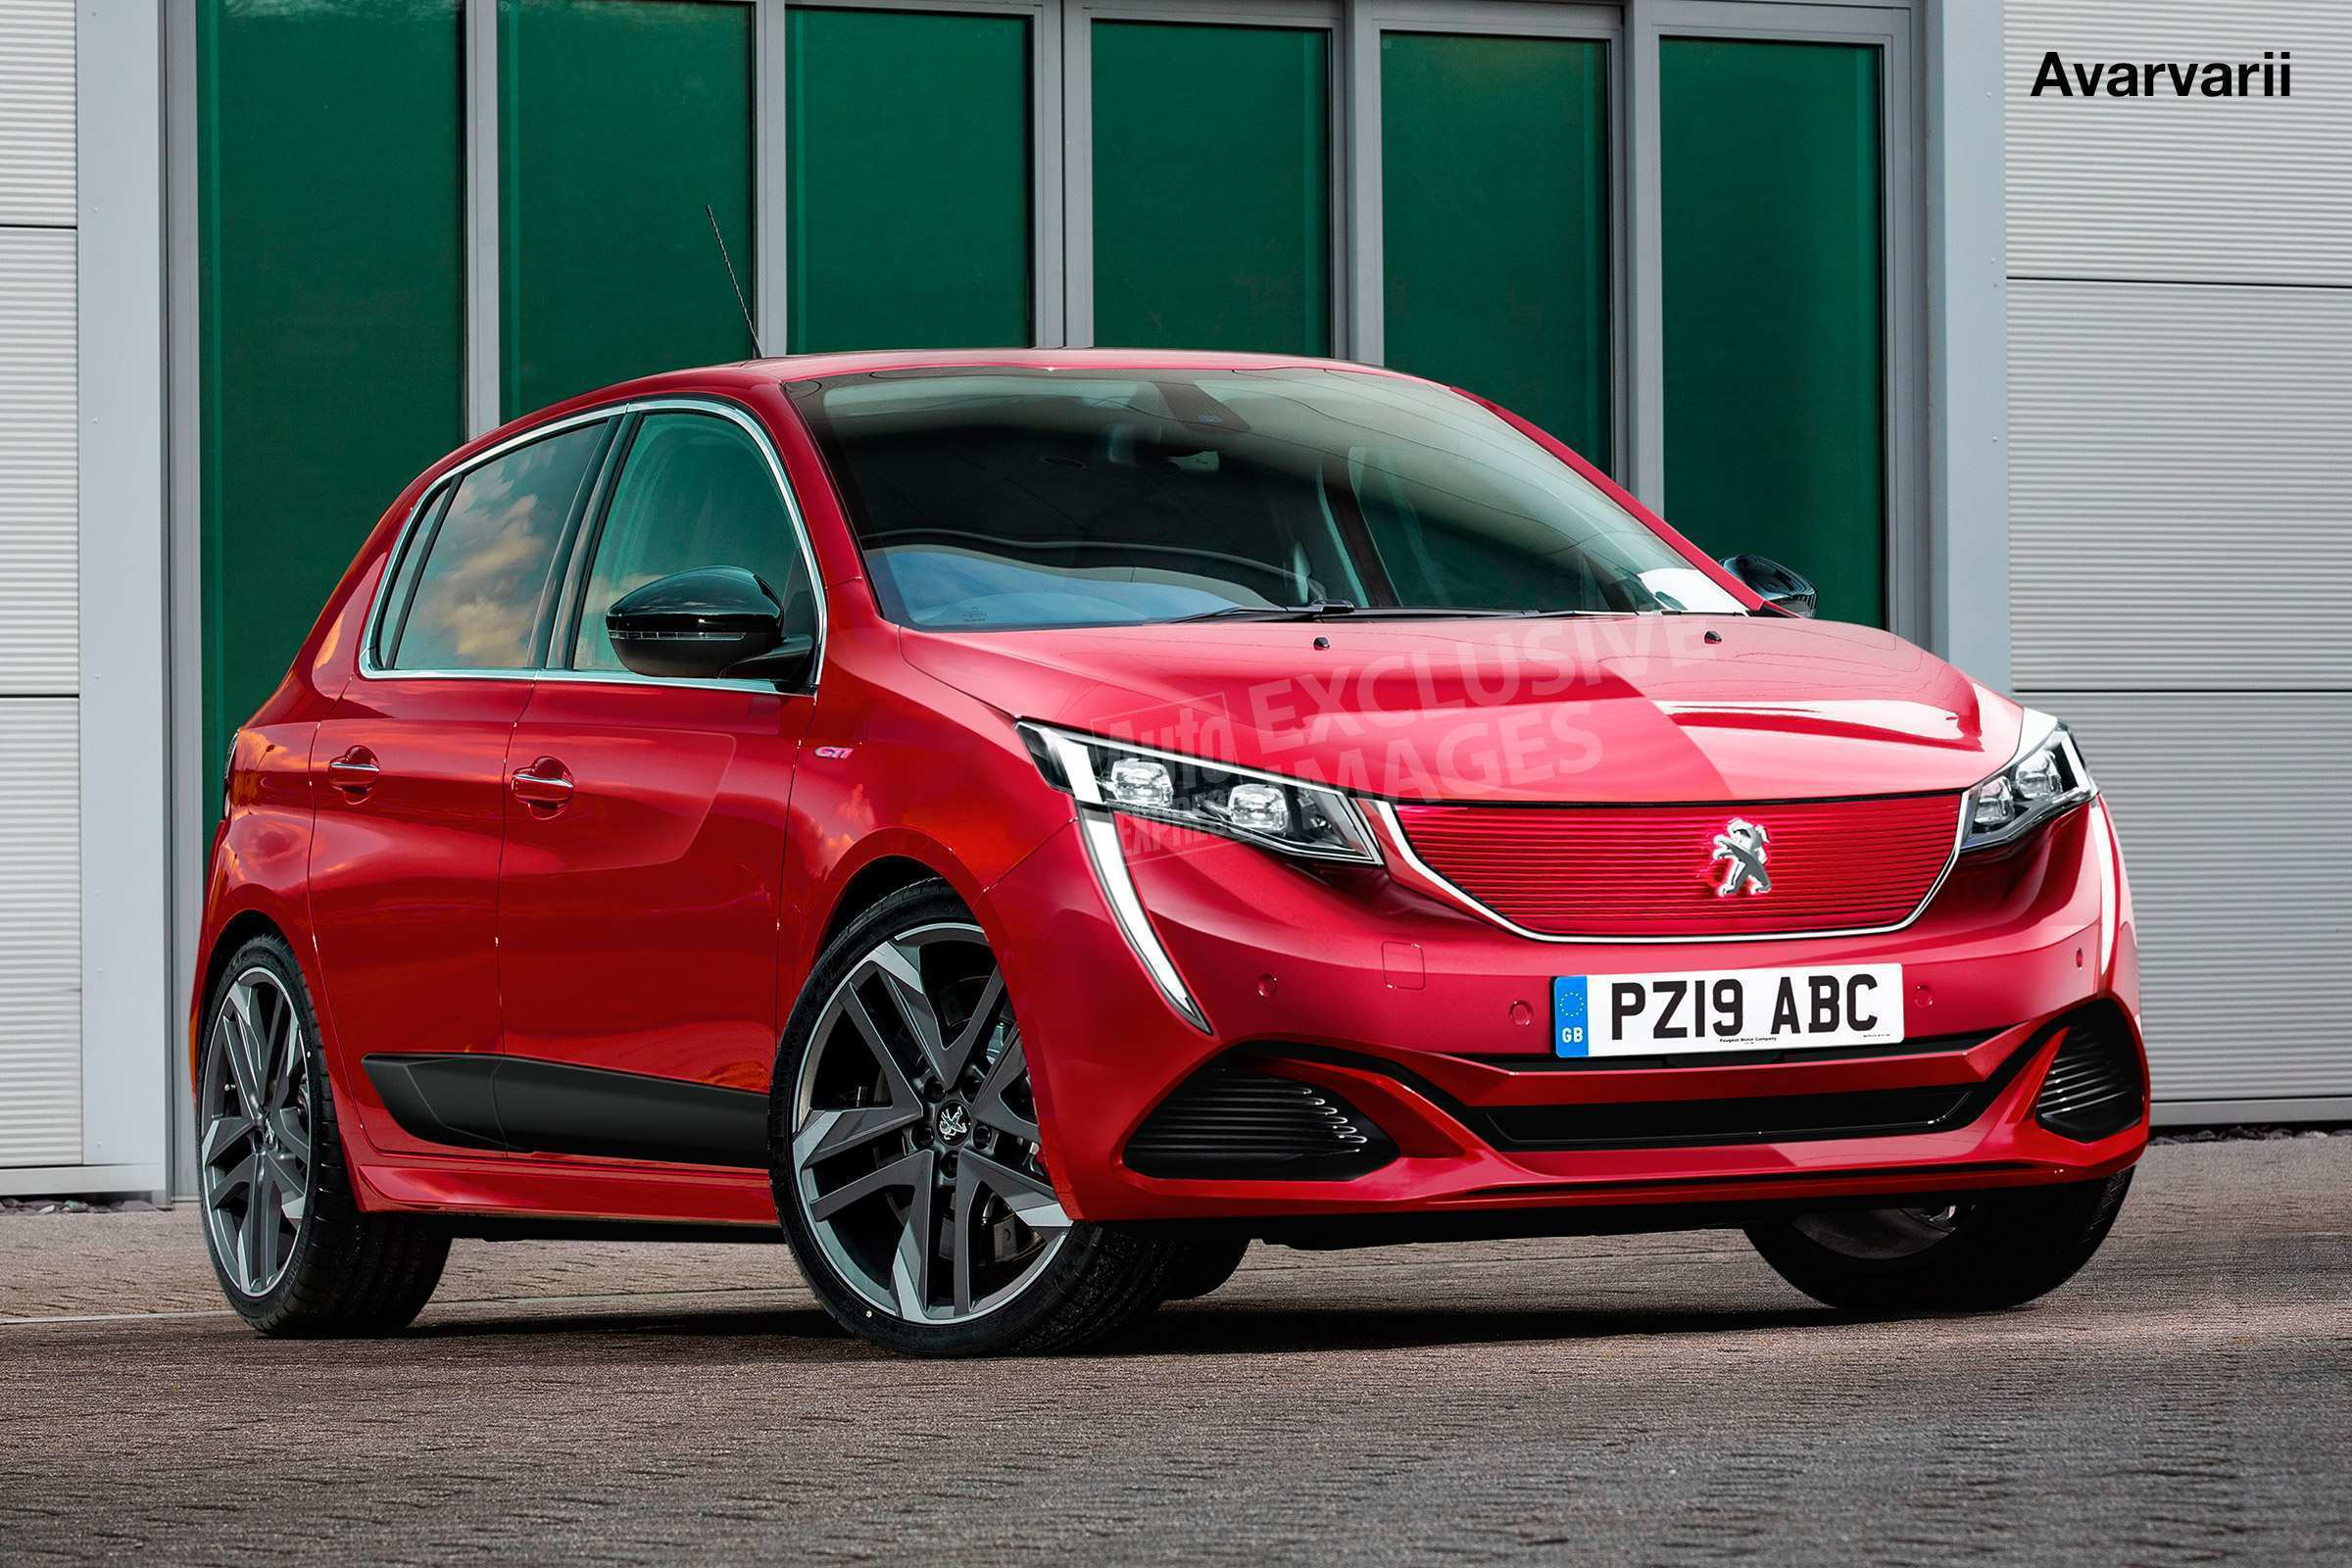 77 All New 2019 Peugeot 208 Gti Concept by 2019 Peugeot 208 Gti